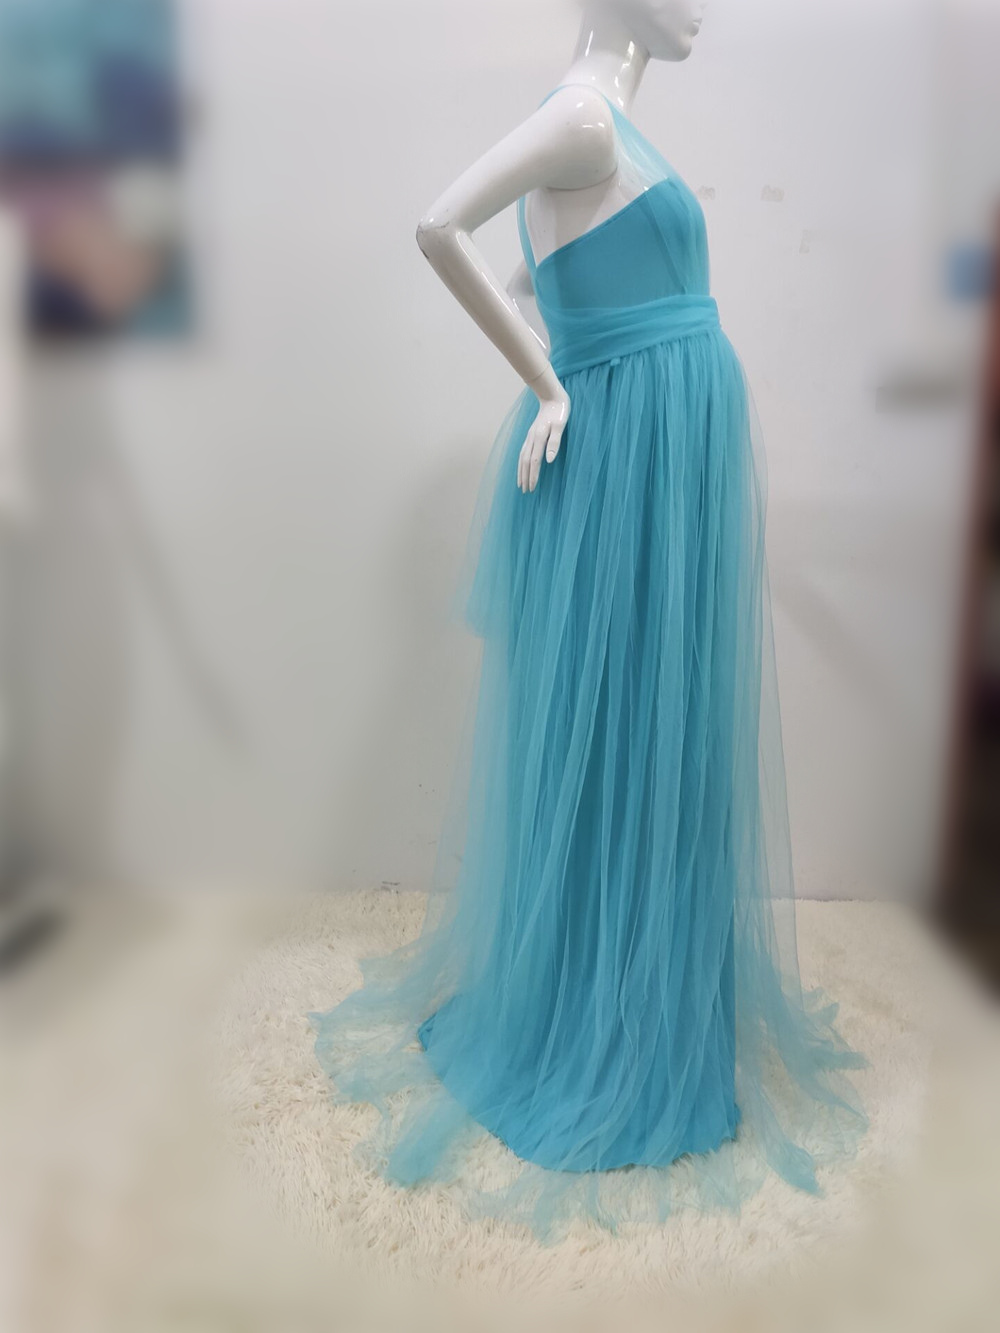 Tulle Sexy Maternity Dresses Photography Props Long Fancy Pregnancy Dress Mesh Pregnant Women Maxi Gown Clothes For Photo Shoots (16)